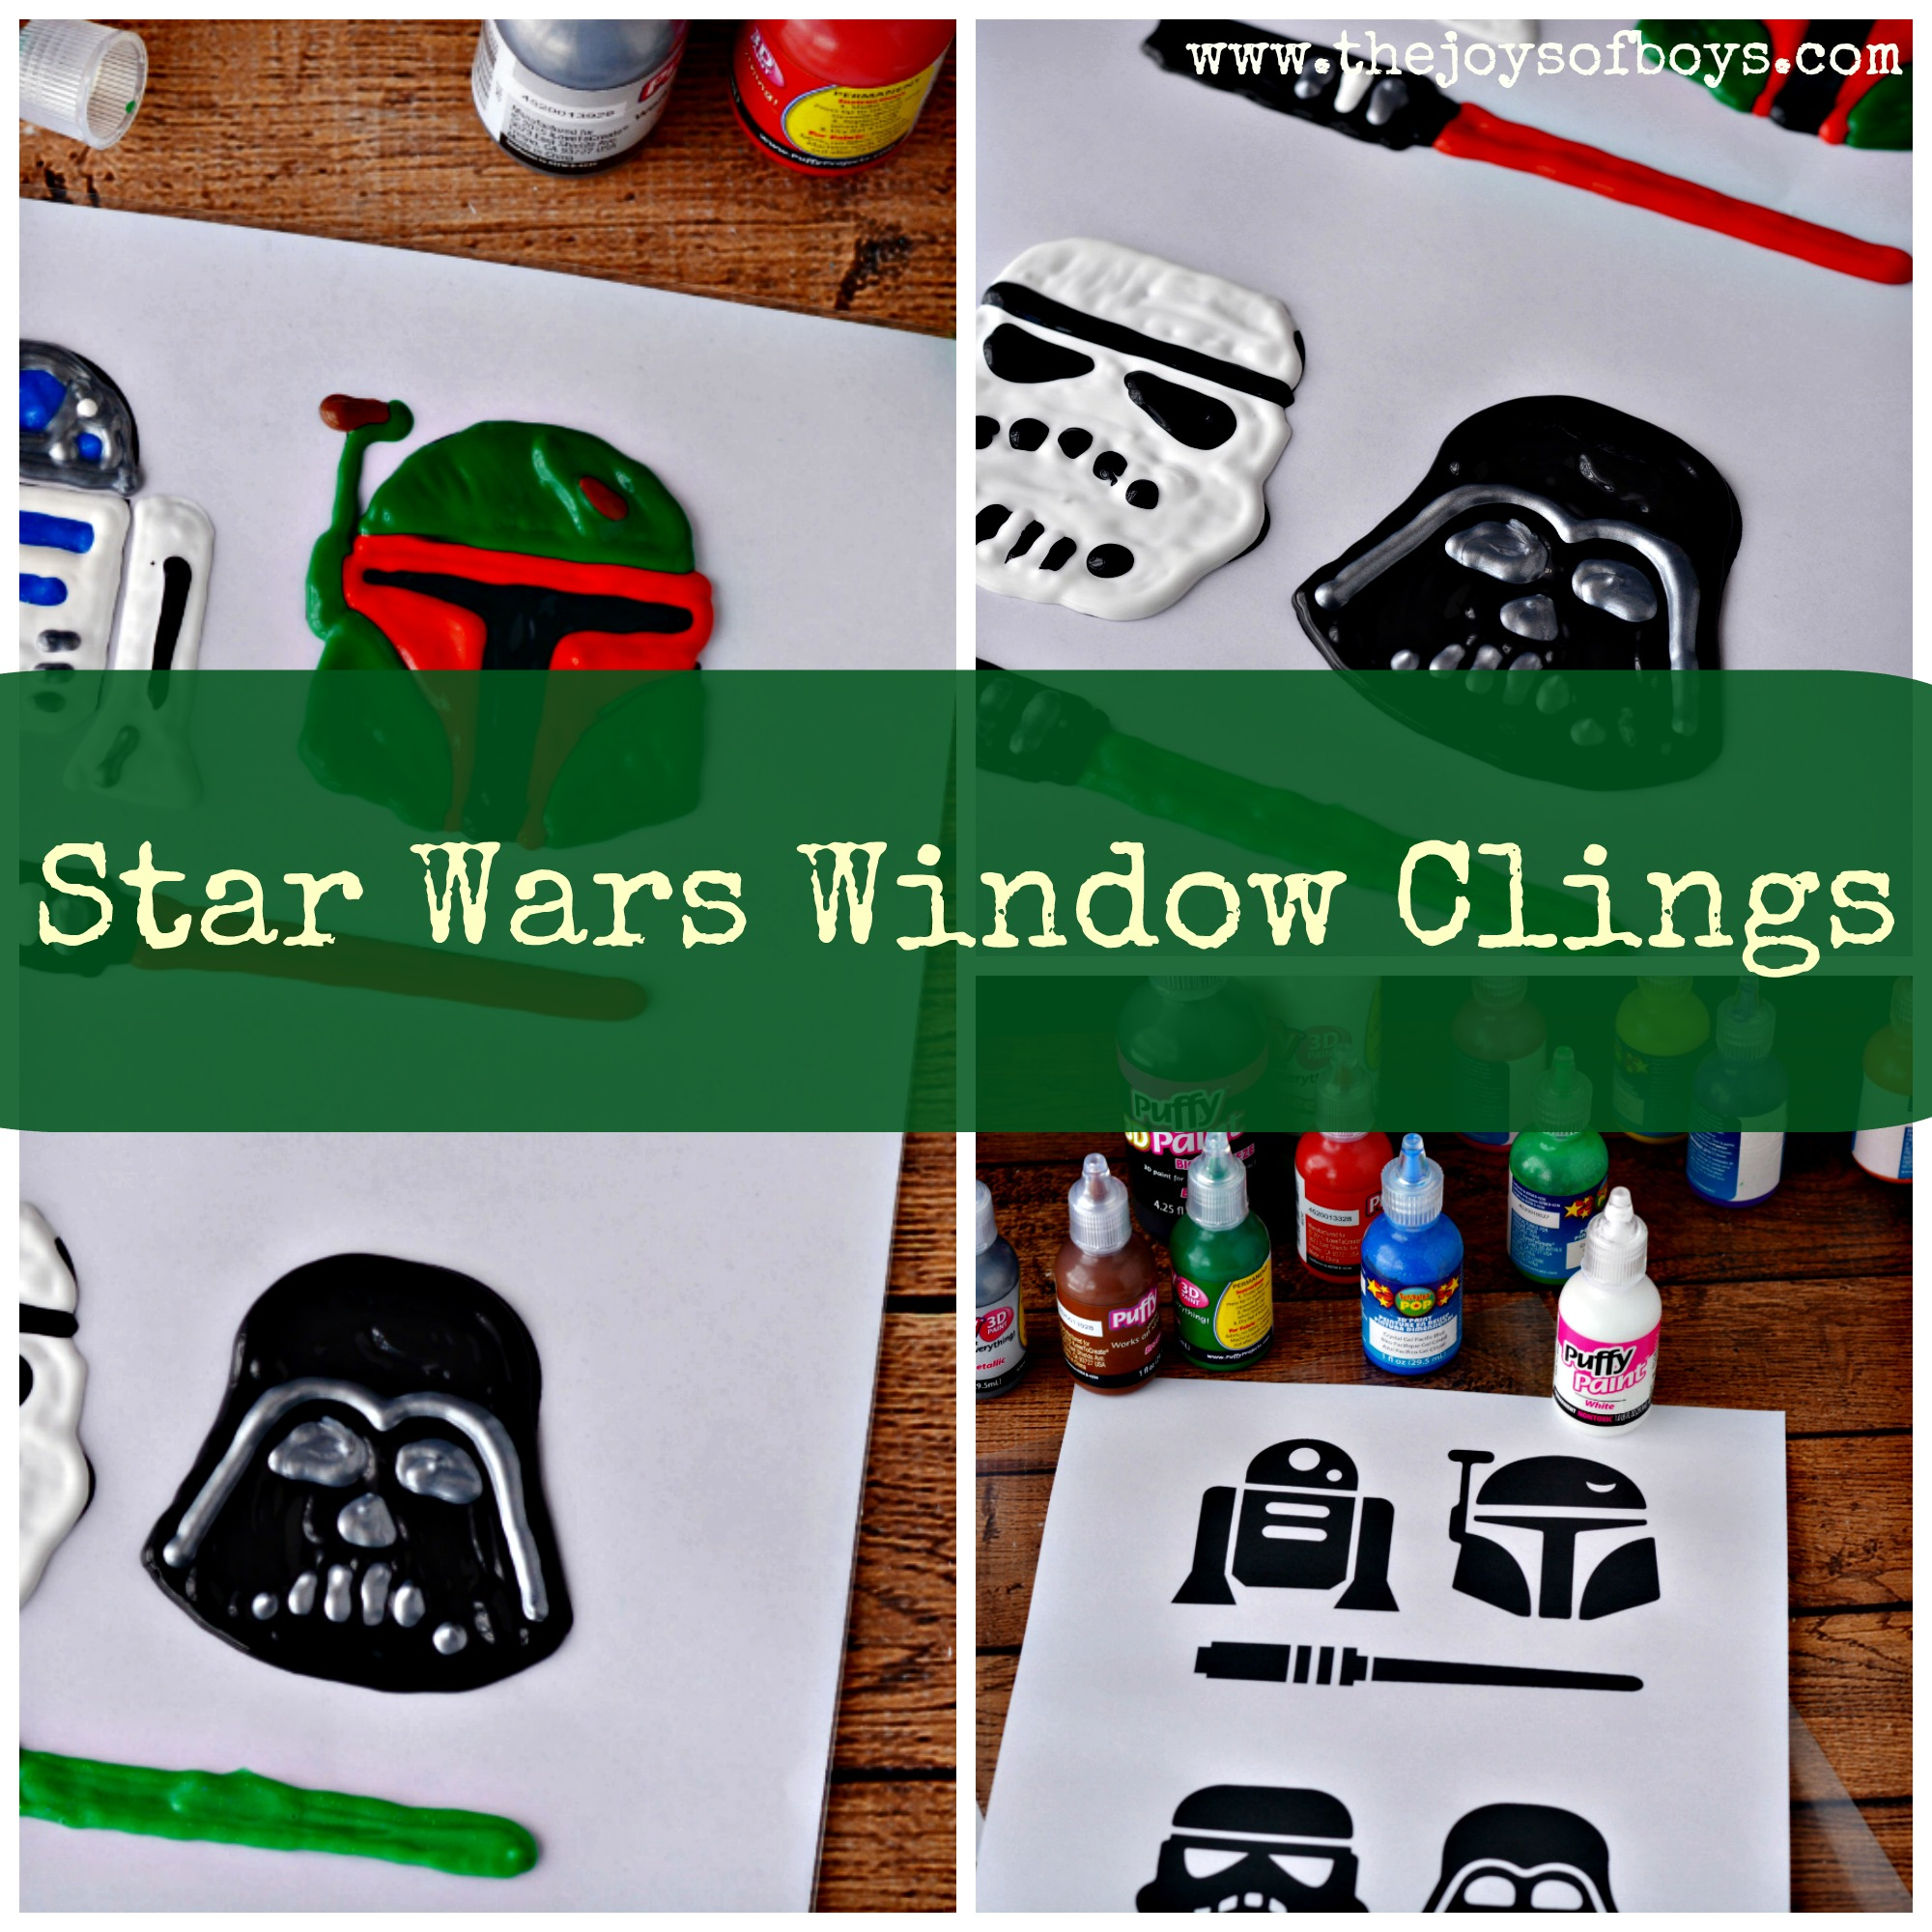 Star Wars Window Clings